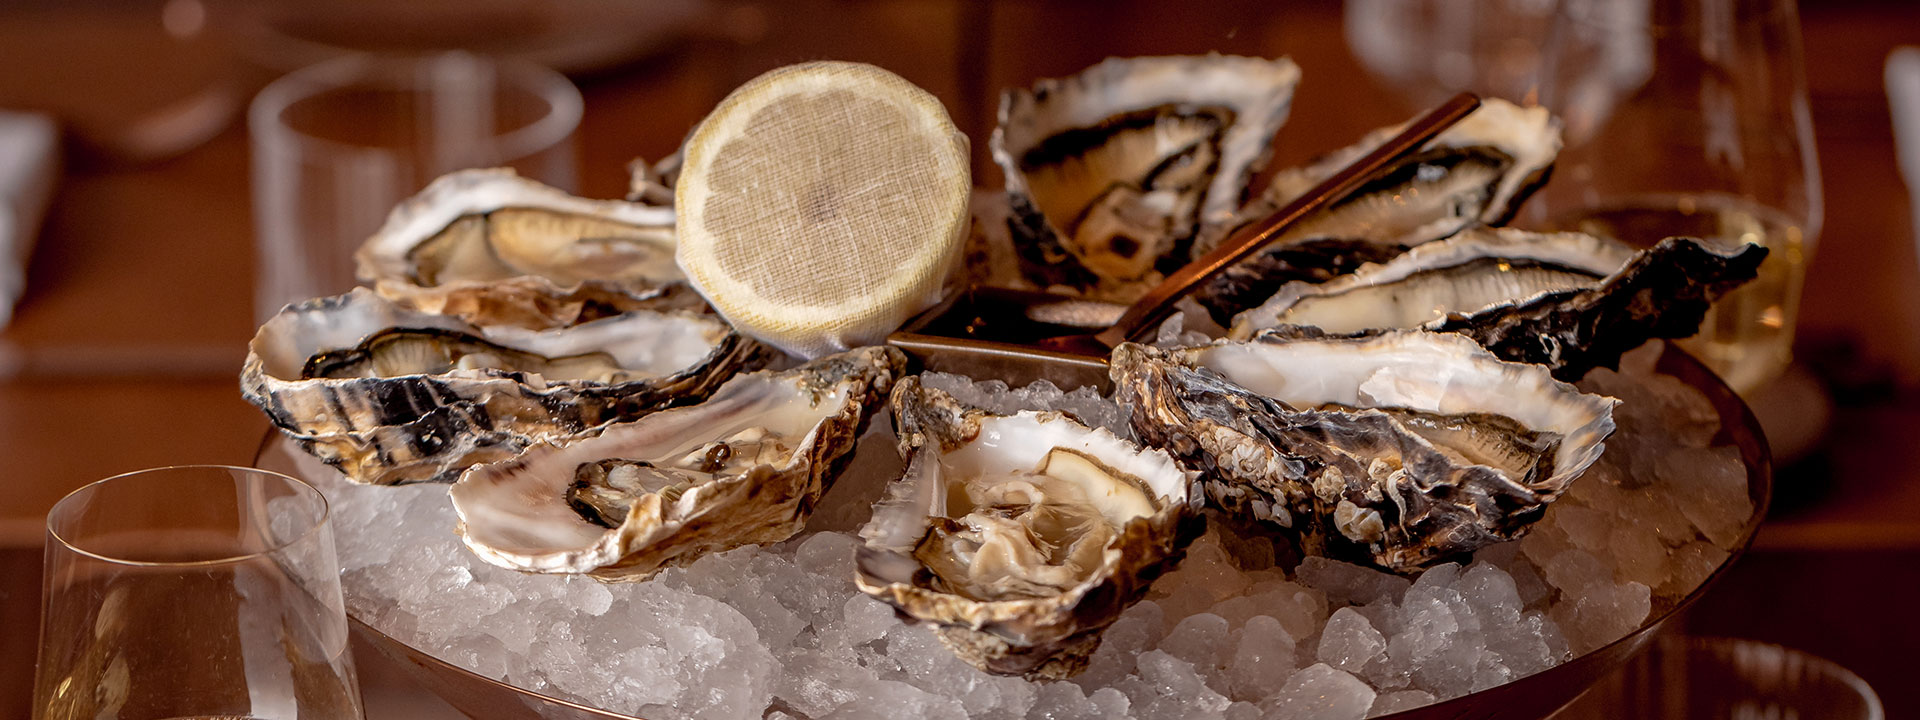 Oysters on ice at The Connaught Grill restaurant at The Connaught in Mayfair